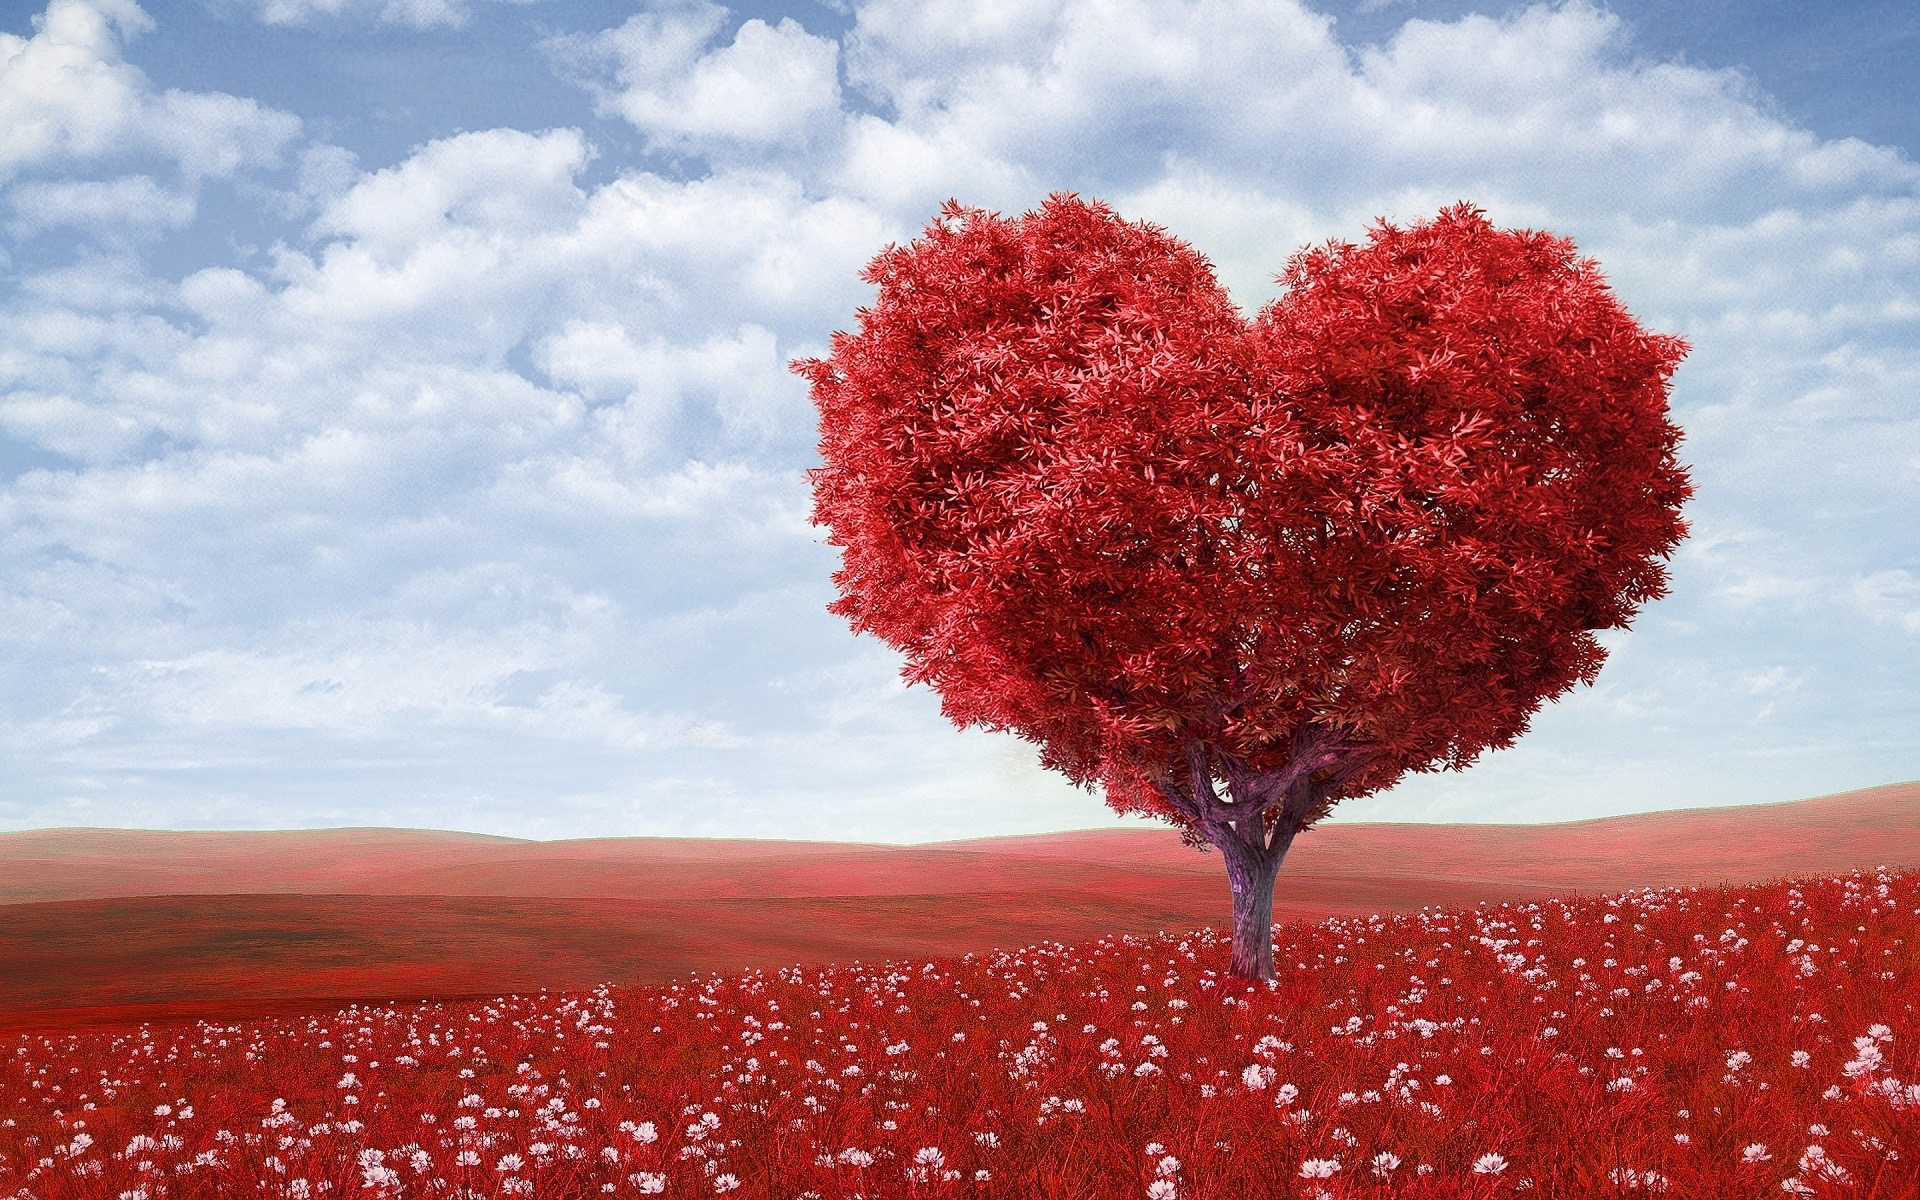 red heart shaped tree in red flower field, educating readers how to prevent heartbreak